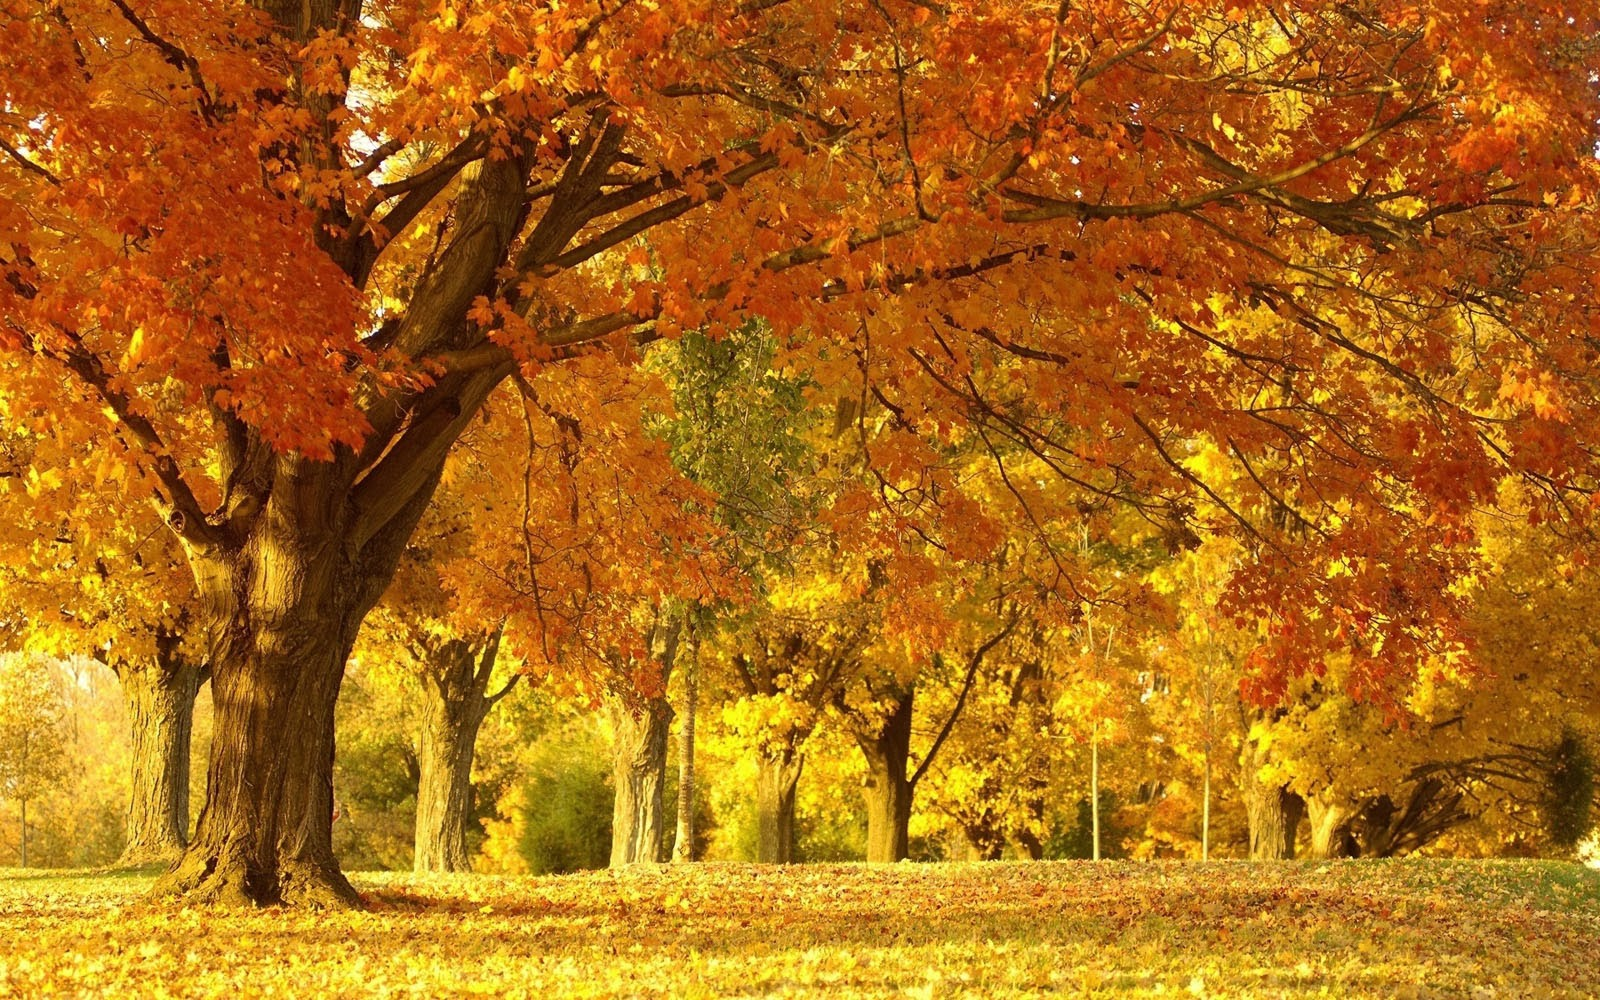 Wallpapers Autumn Scenery Desktop Wallpapers